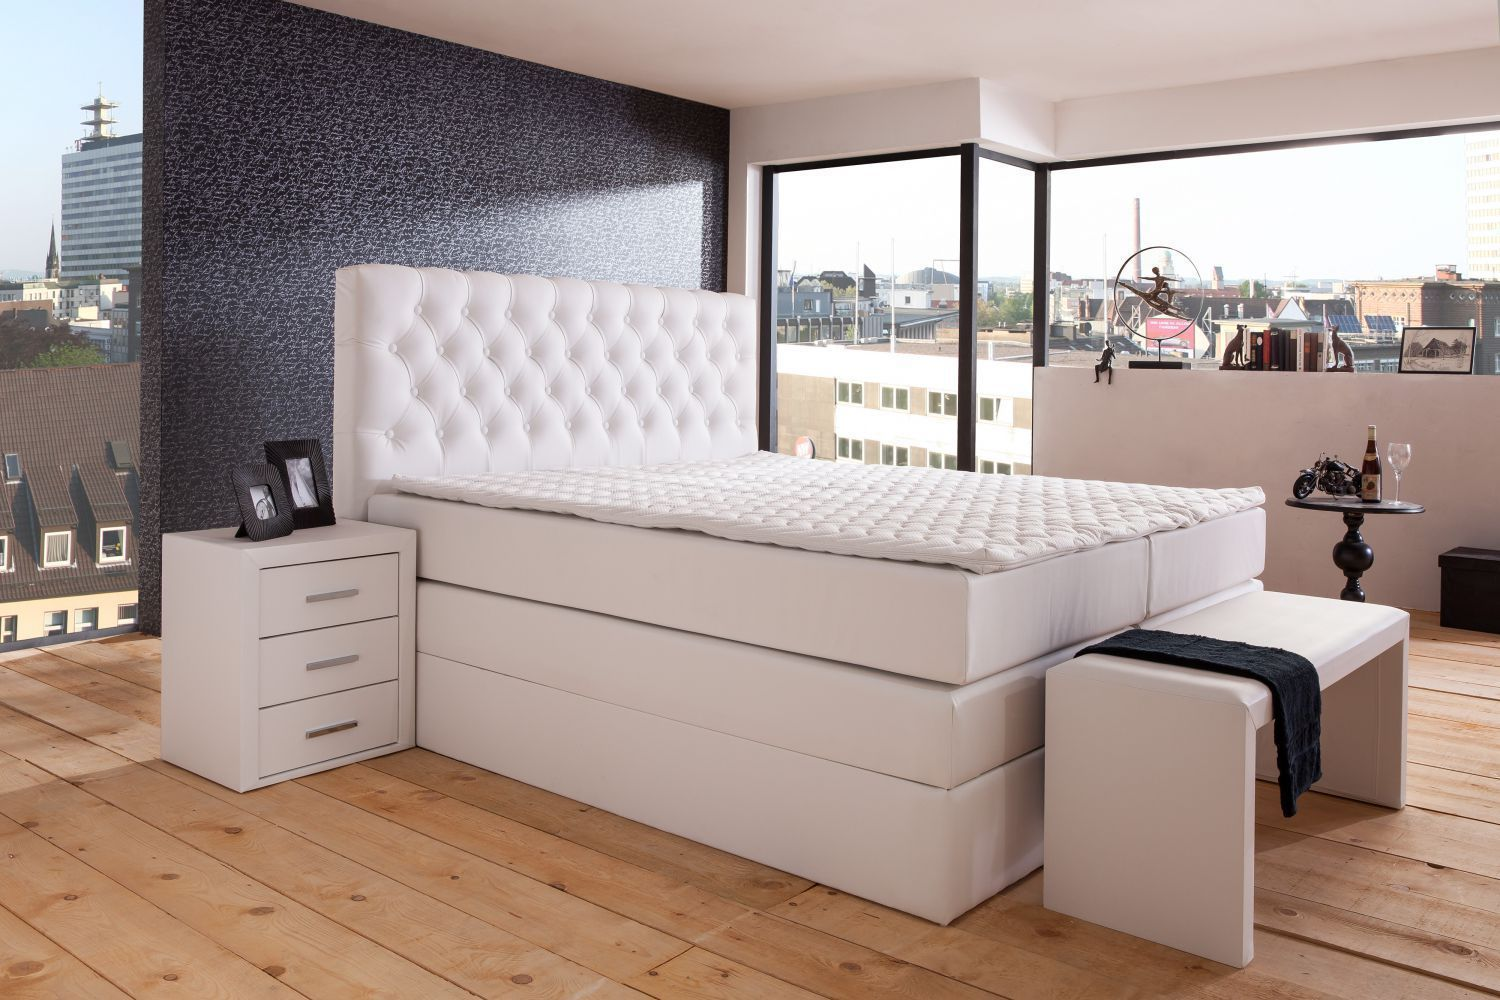 boxspringbett st tropez box mit bettkasten 140x200 160x200 180x200 cm ebay. Black Bedroom Furniture Sets. Home Design Ideas